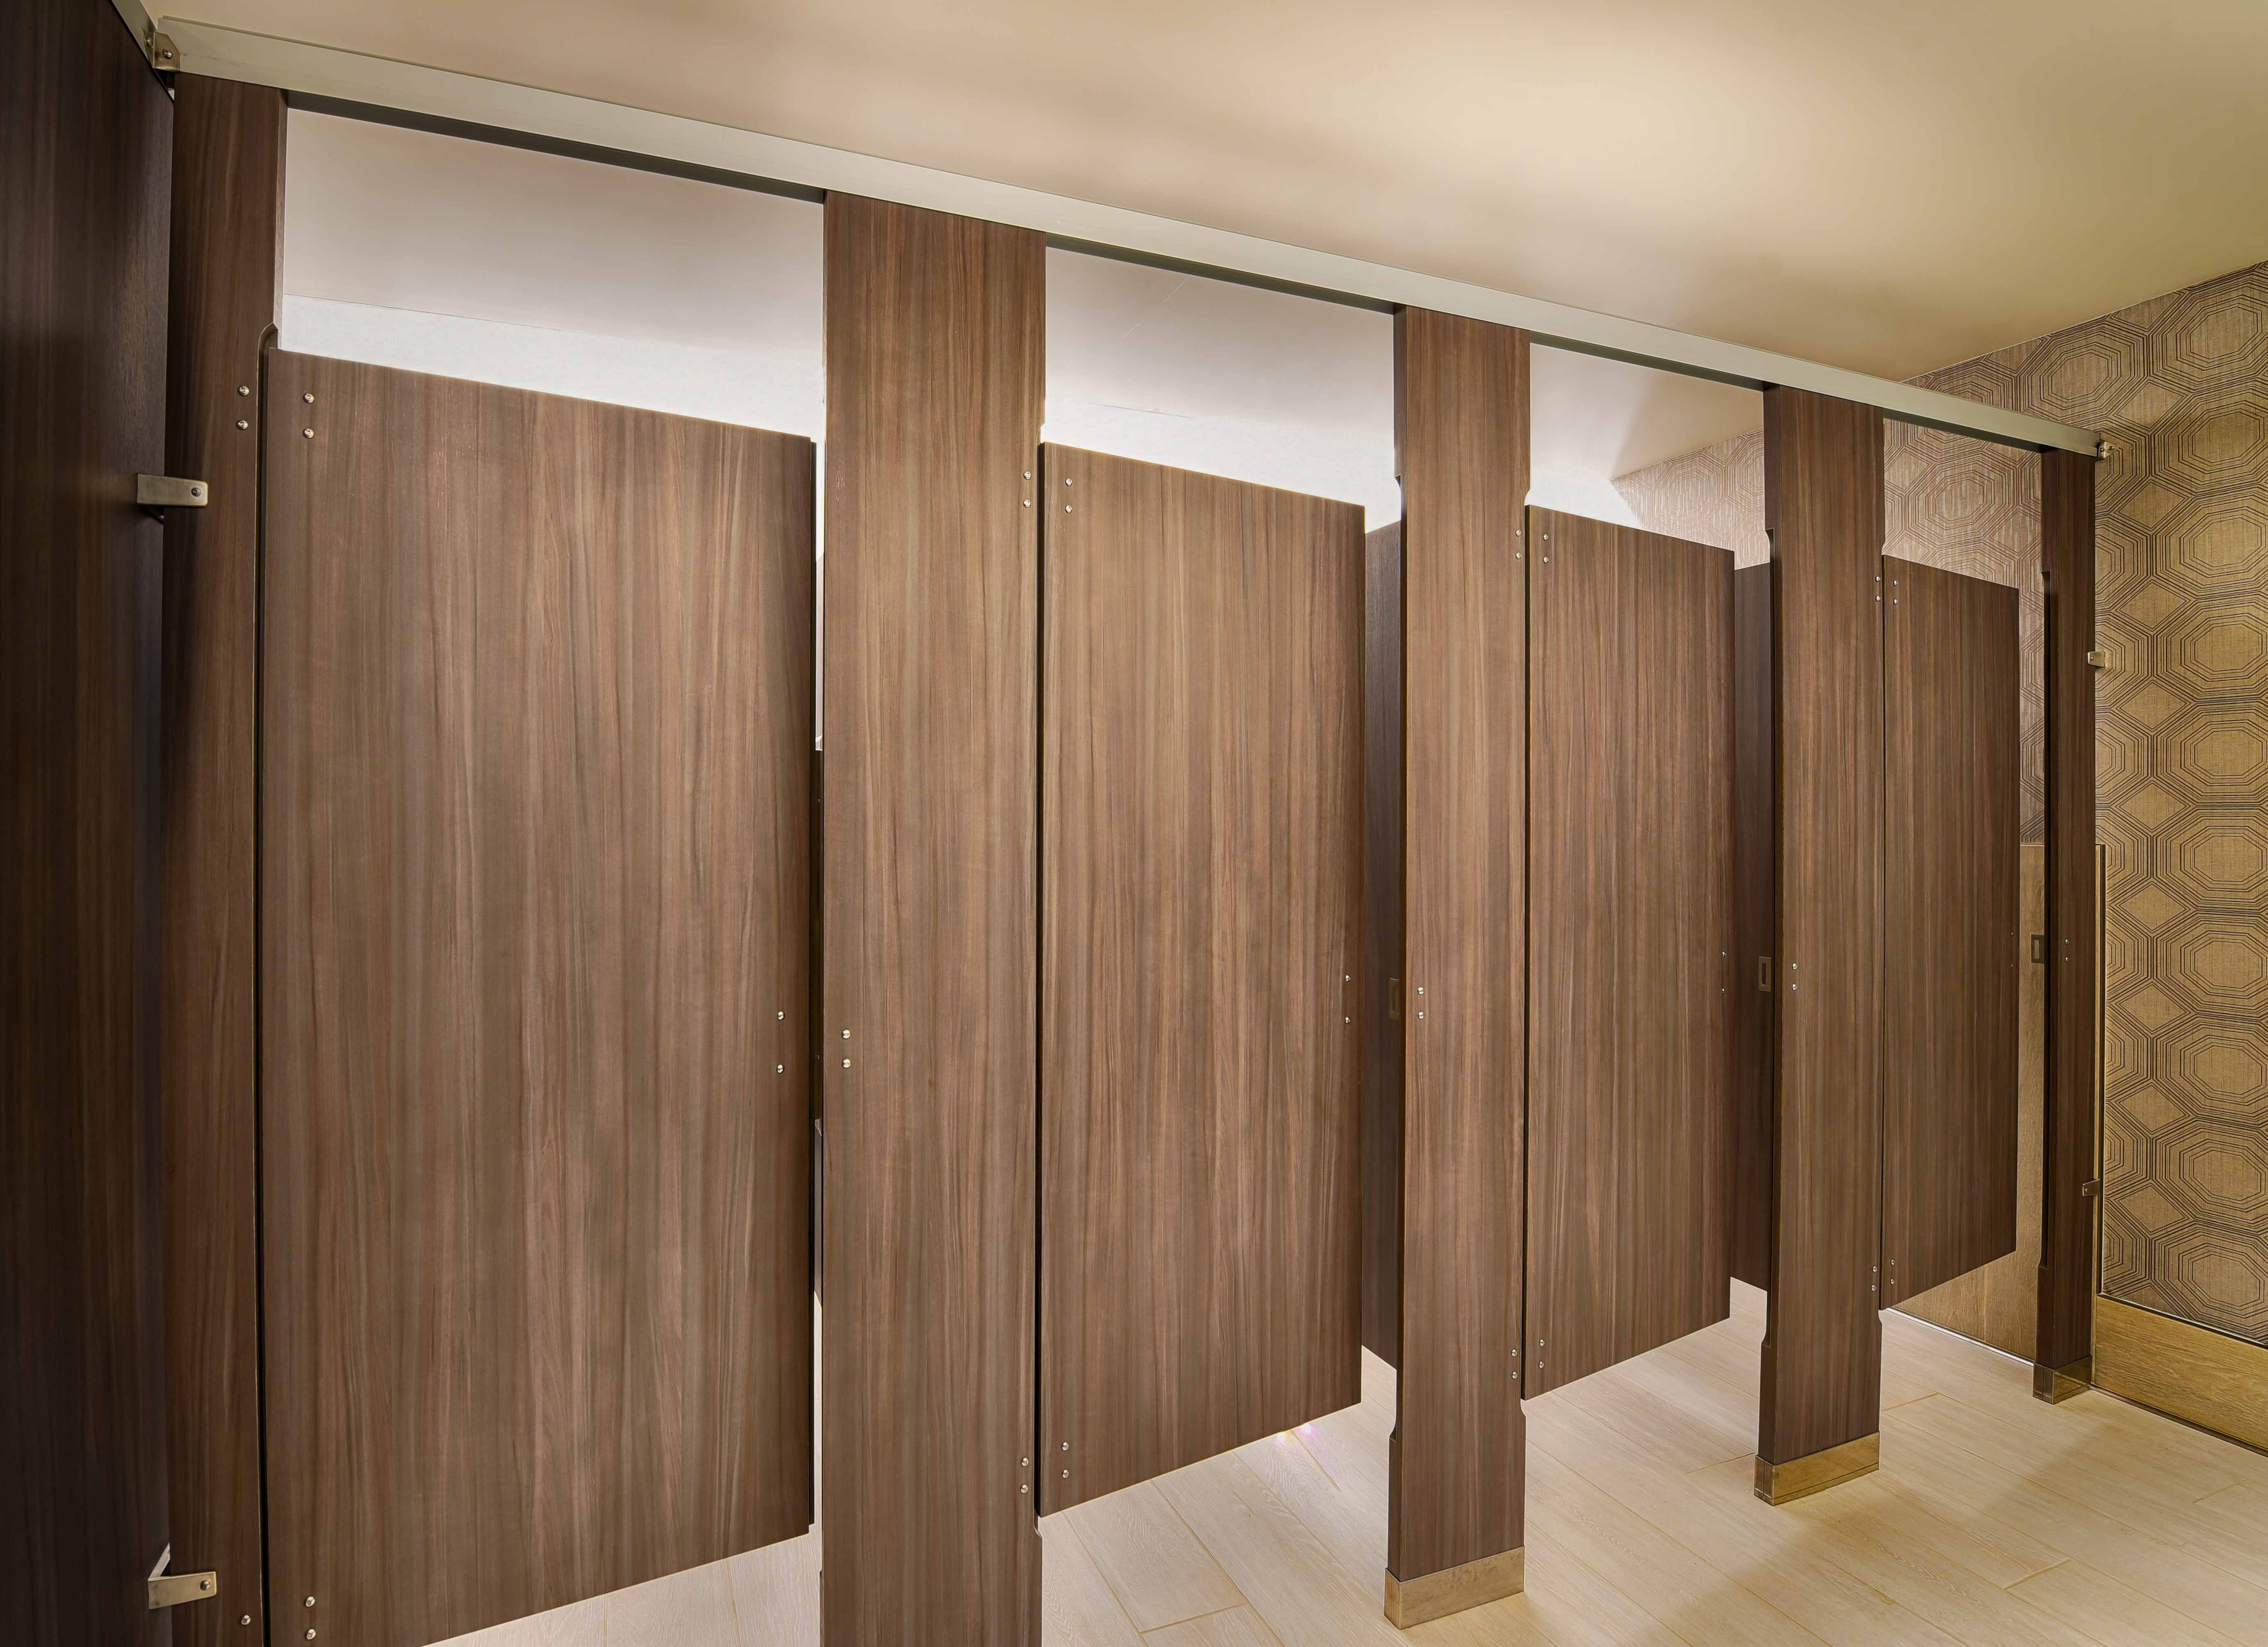 Ironwood Manufacturing Laminate Toilet Partitions With Zero Sightline Doors Add Privacy For A Publi Restroom Design Washroom Design Commercial Bathroom Designs